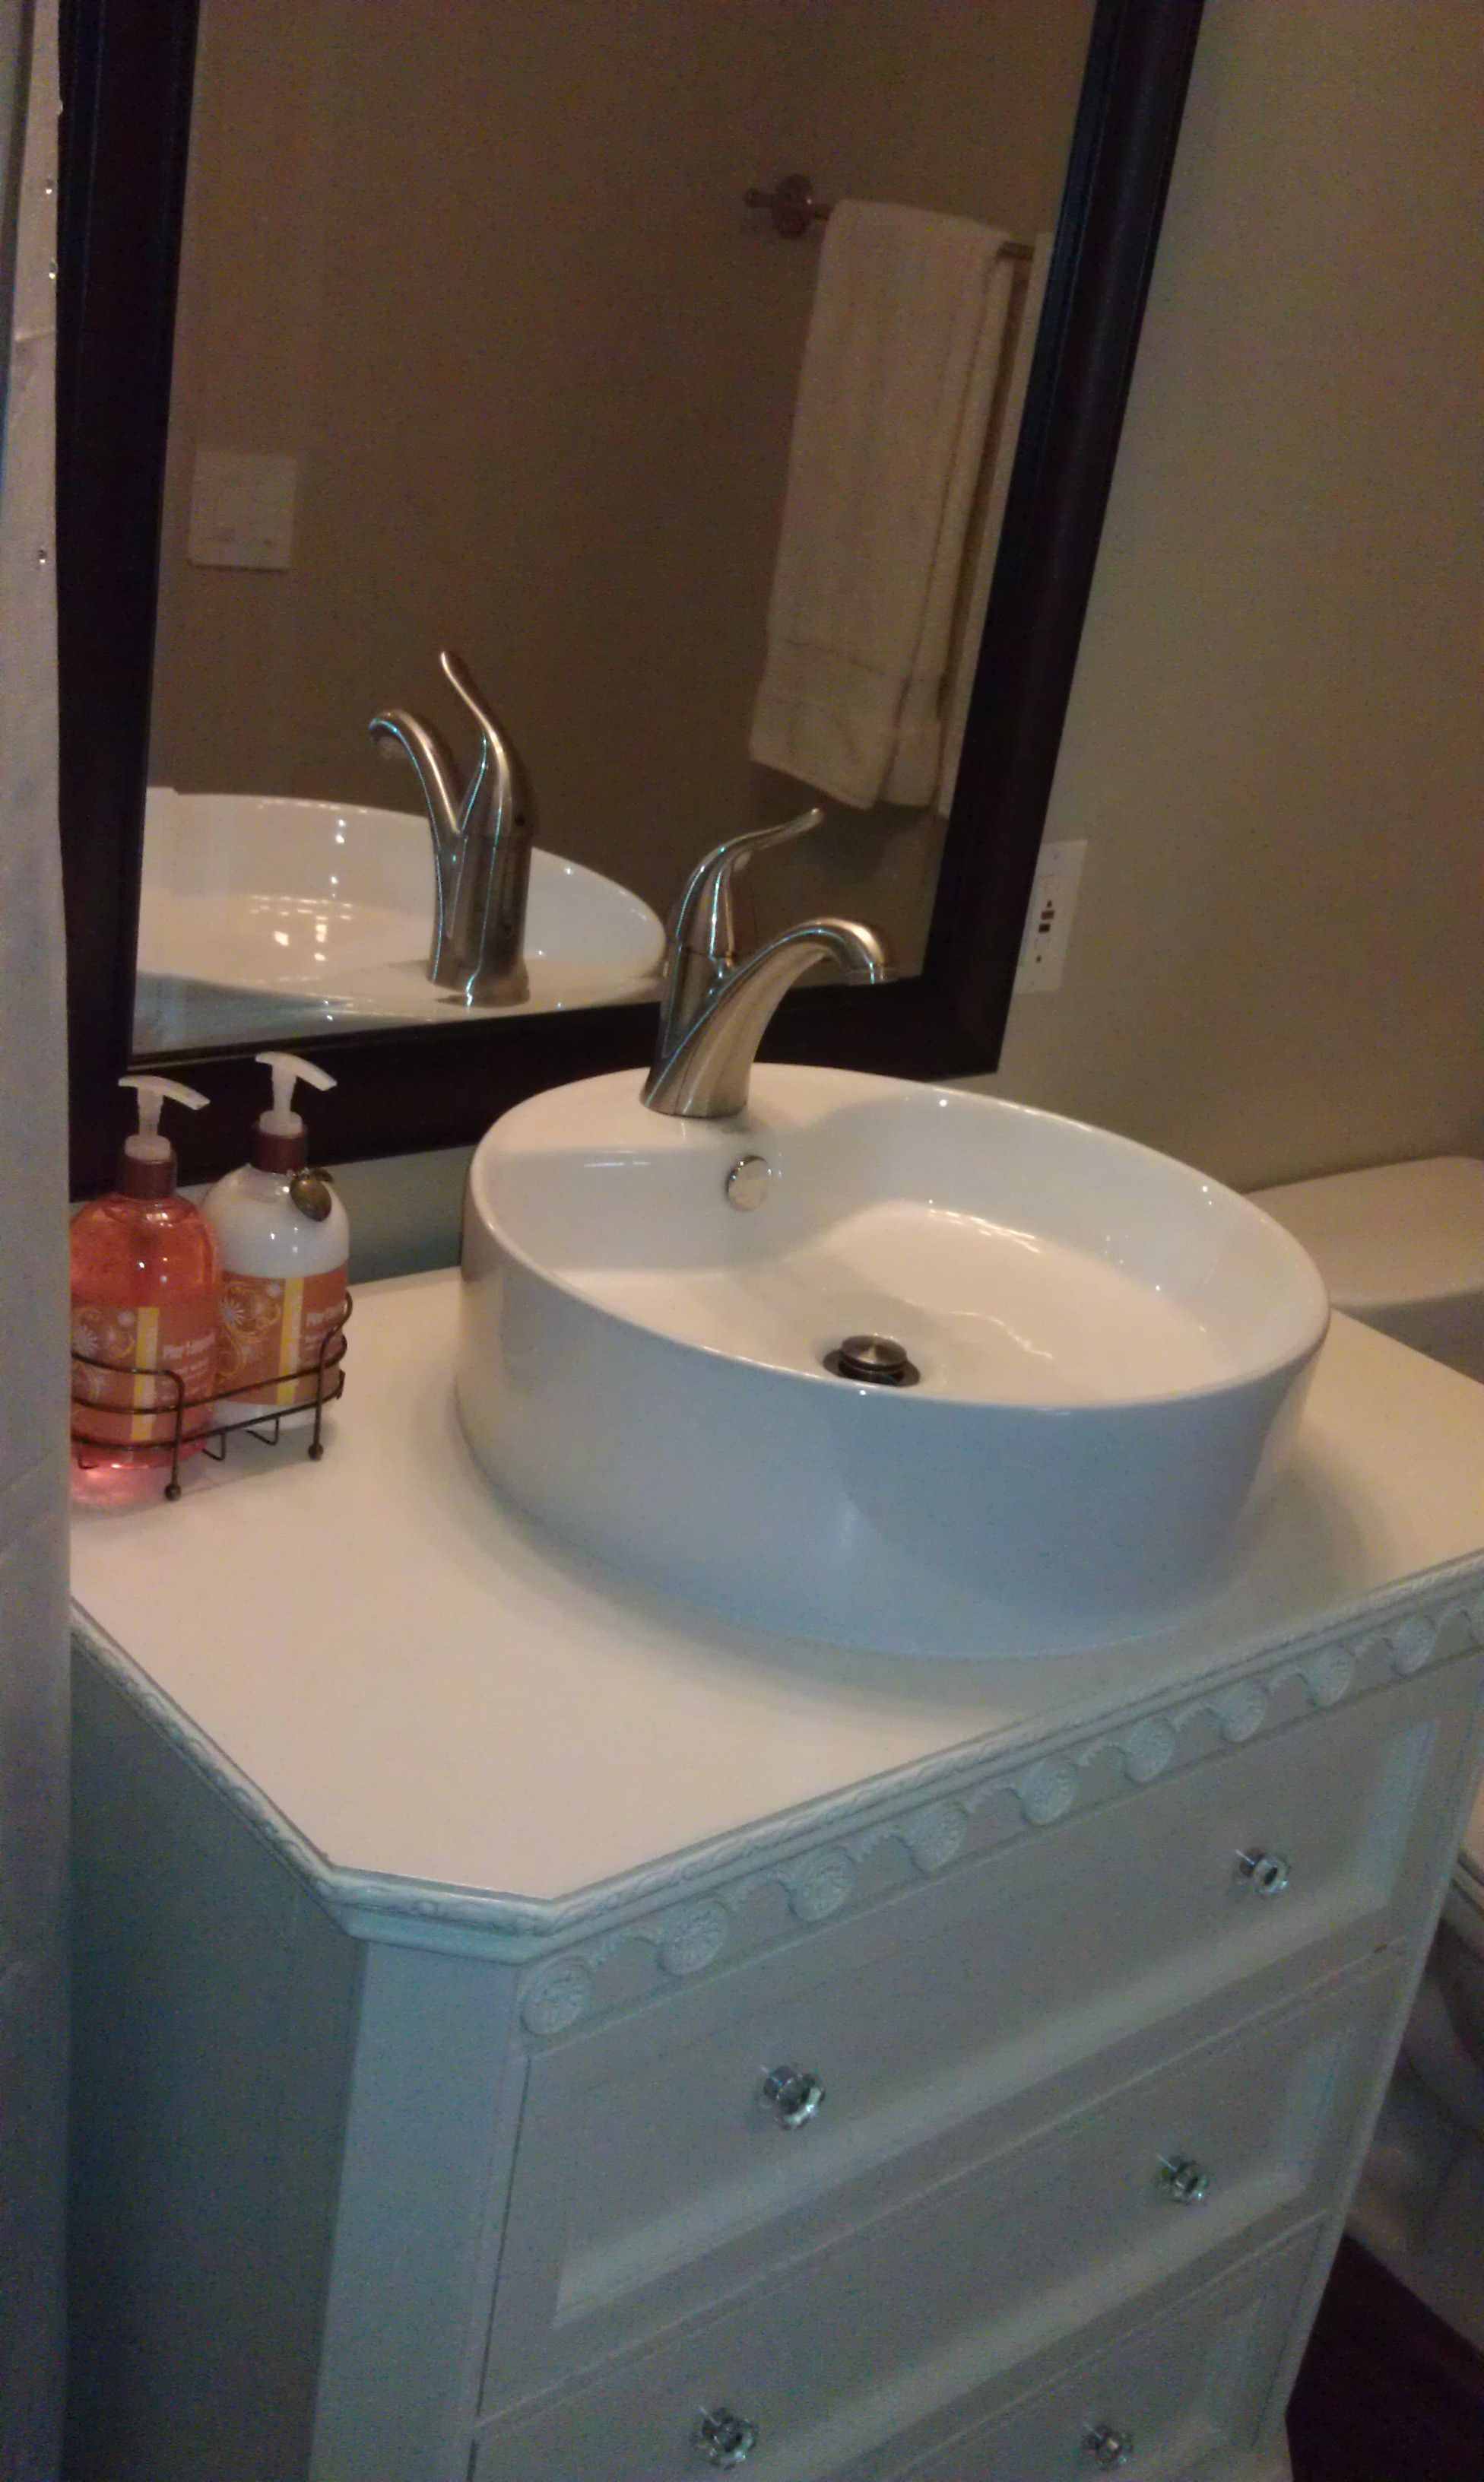 Craigslist Bathroom Vanity For Sale